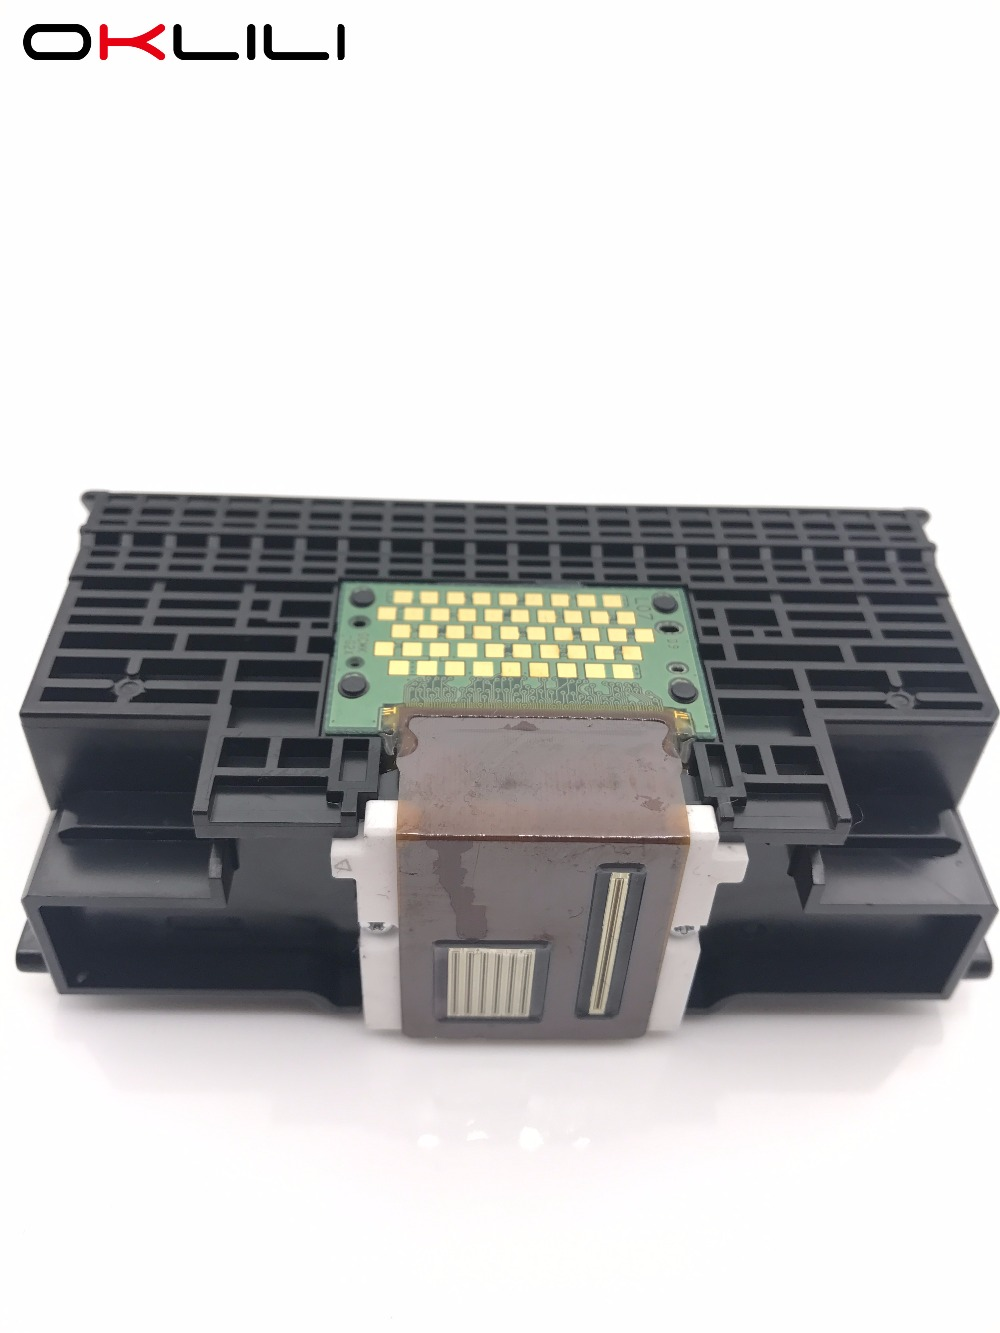 OKLILI ORIGINAL QY6-0062 QY6-0062-000 Printhead Print Head Printer Head for Canon iP7500 iP7600 MP950 MP960 MP970 original print head qy6 0056 printhead compatible for canon ds700 ds810 mini220 printer head